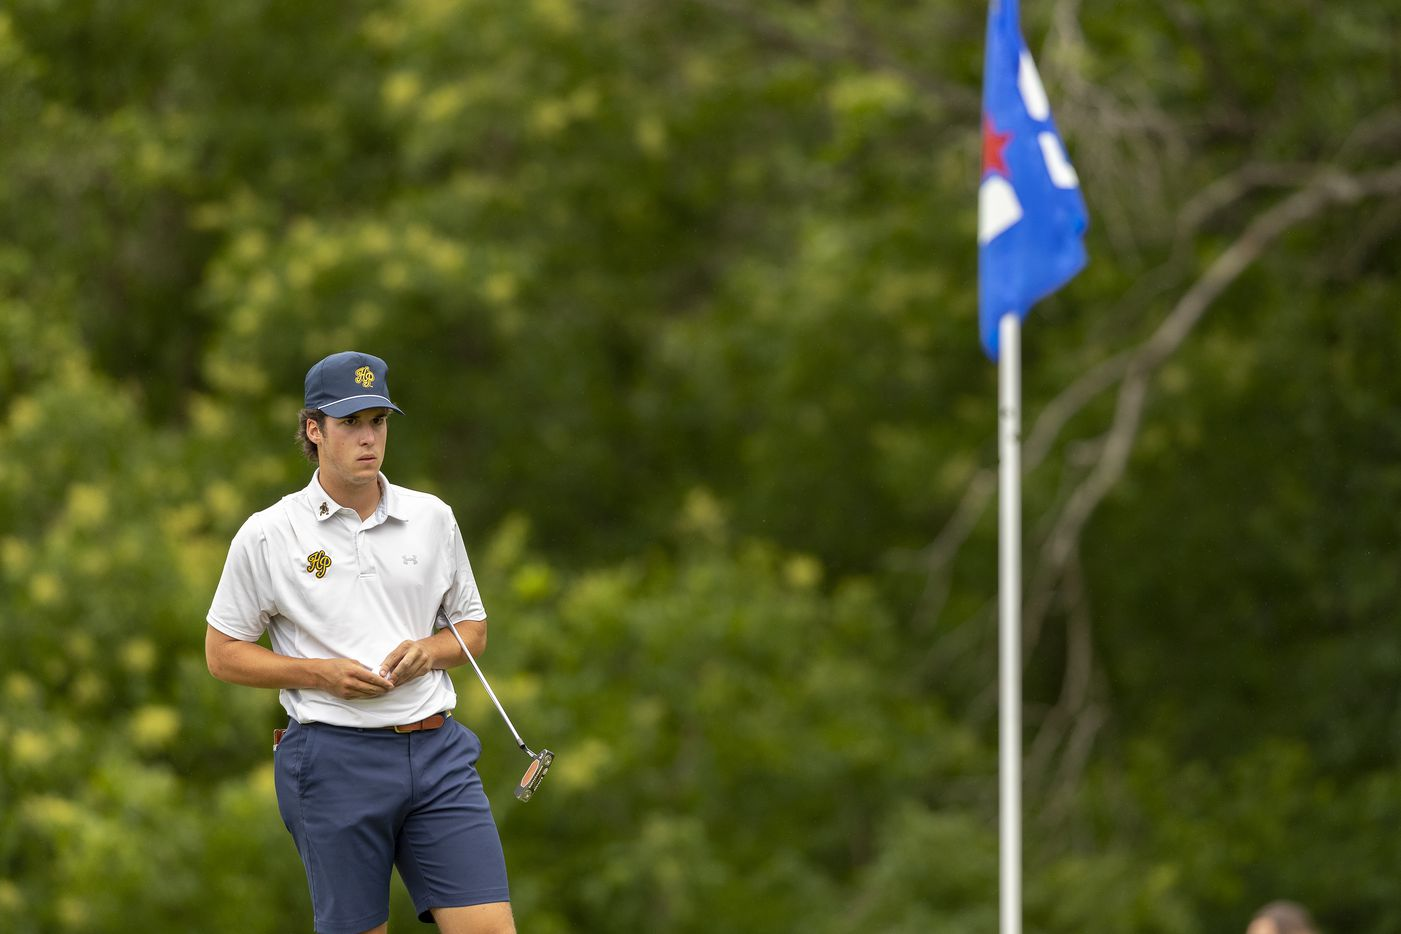 Highland ParkÕs Joe Stover studies his shot on the 9th green during round 1 of the UIL Class 5A boys golf tournament in Georgetown, Monday, May 17, 2021. (Stephen Spillman/Special Contributor)